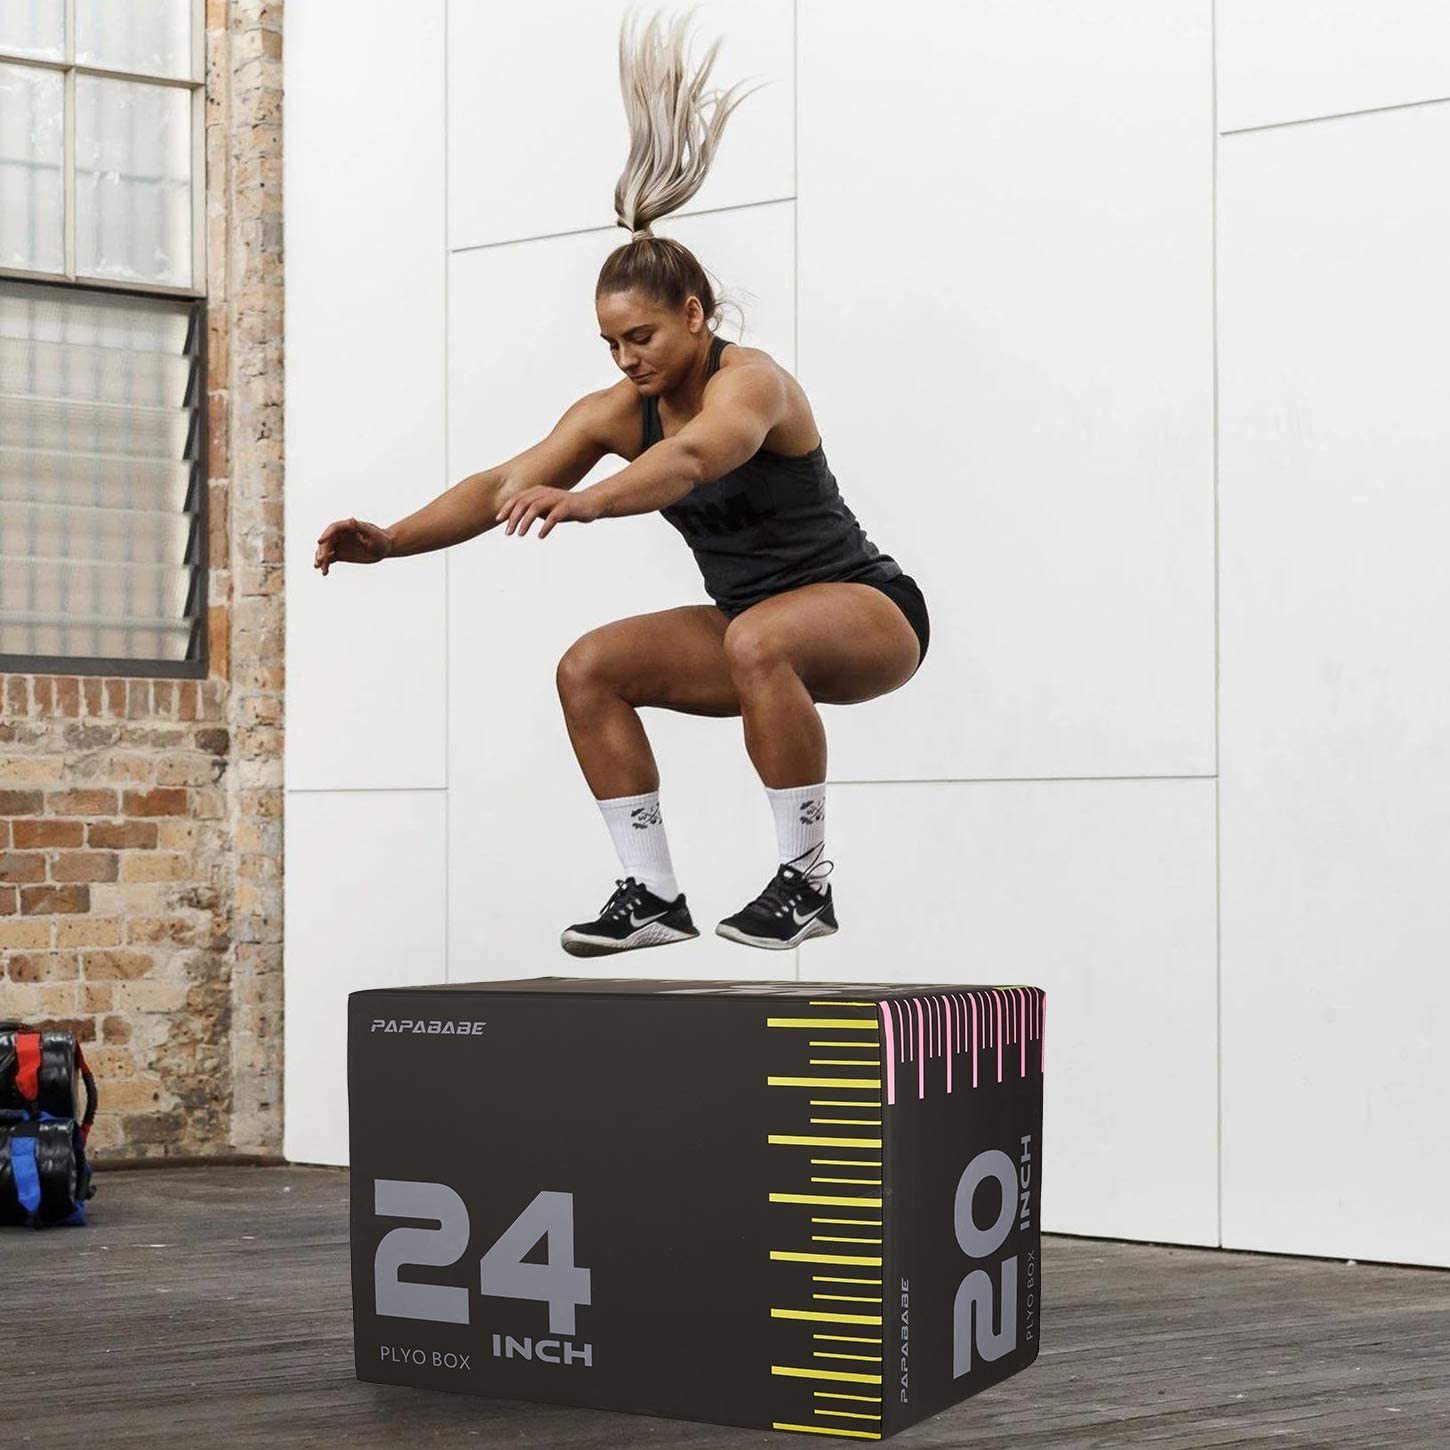 "3 in 1 Foam Plyometric Box Jumping Exercise 20'' x 24'' x 30"", Foam Plyo Box Crossfit Boxes for HIIT Exercises, MMA & Crossfit Workouts"